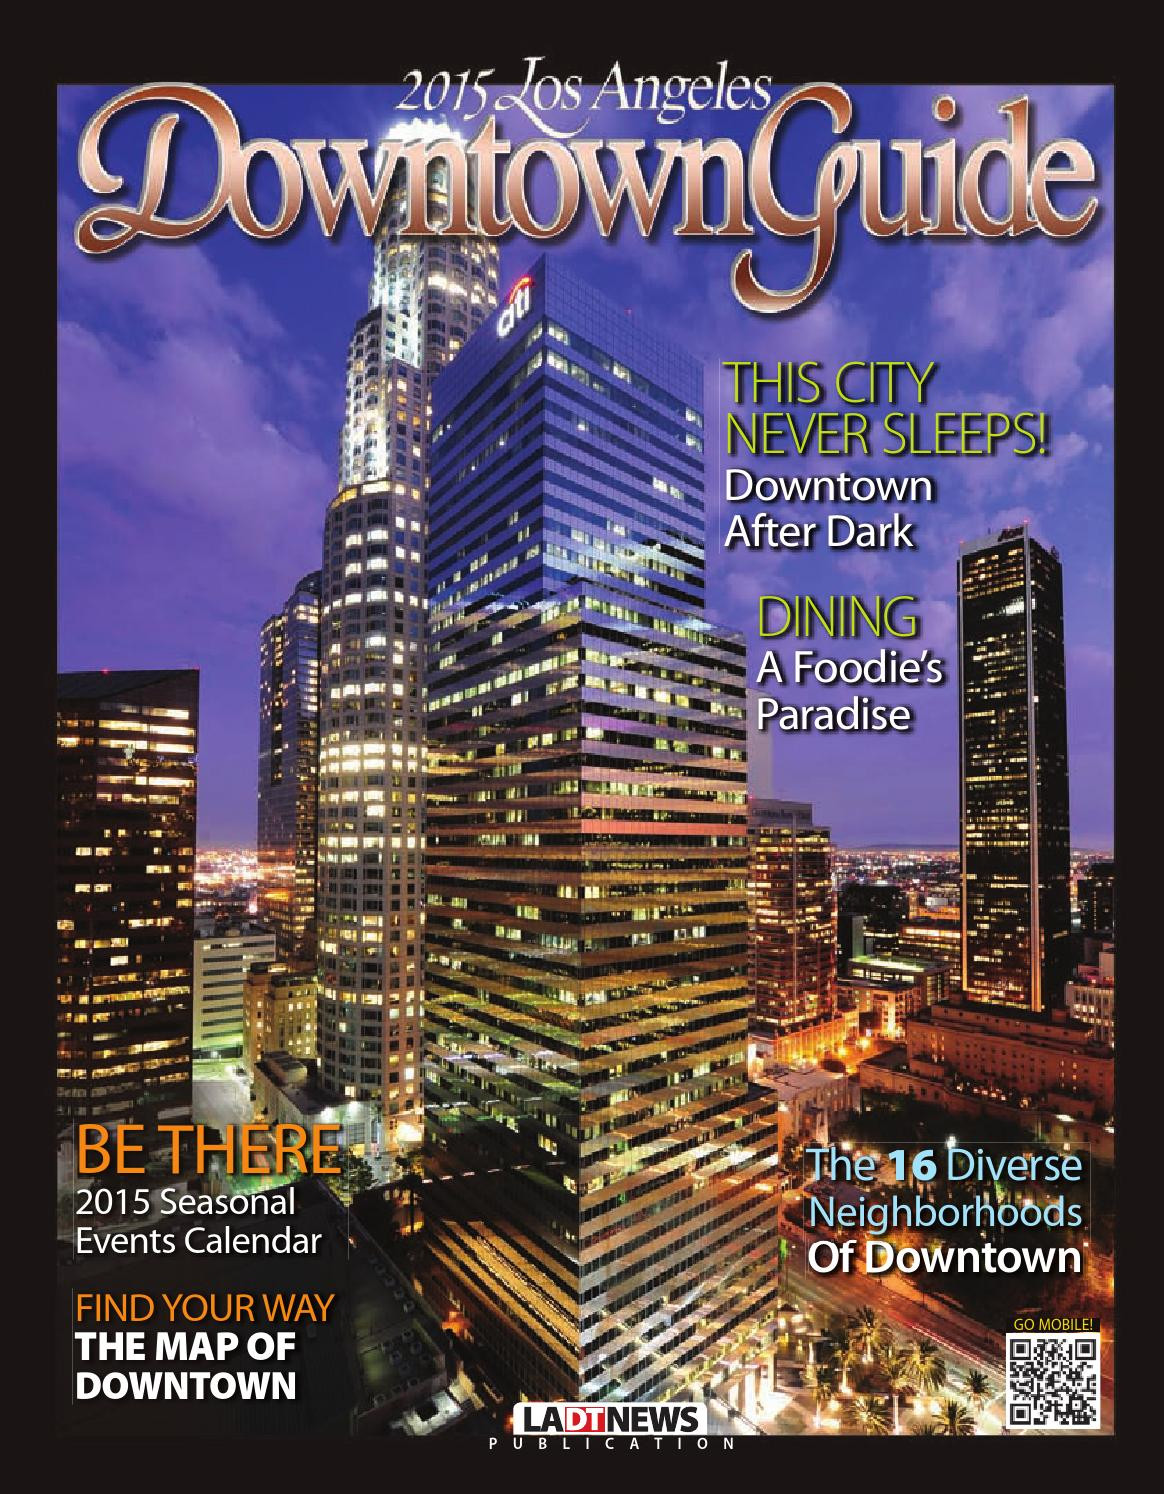 wholesale vases downtown los angeles of 2015 los angeles downtown guide by los angeles downtown news issuu with page 1